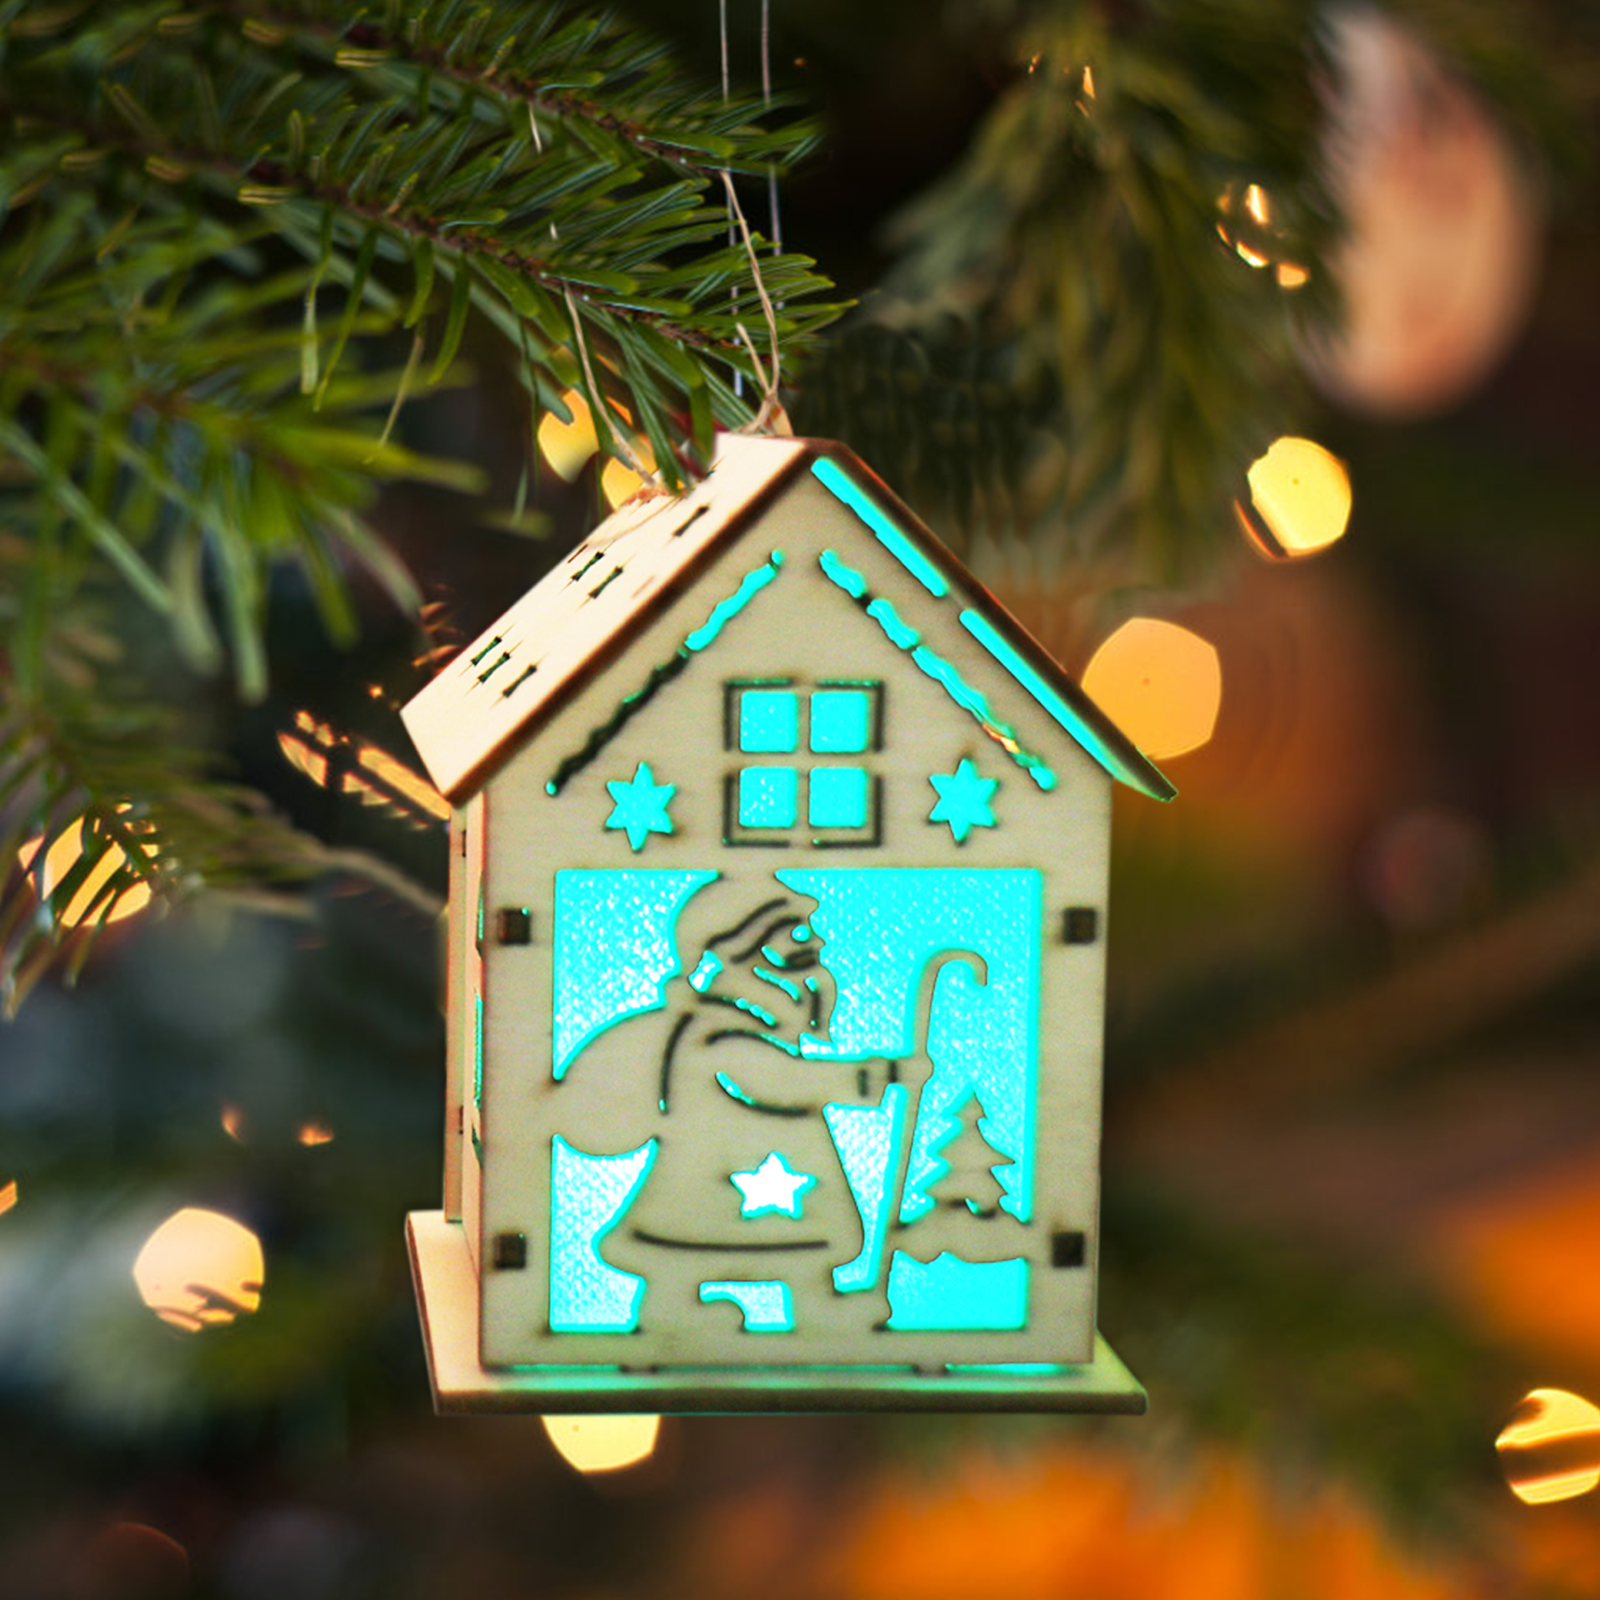 aliexpresscom buy 1pc christmas festival led light wood house christmas tree hanging ornaments holiday xmas gift wedding decoration gifts from reliable - House Christmas Ornament